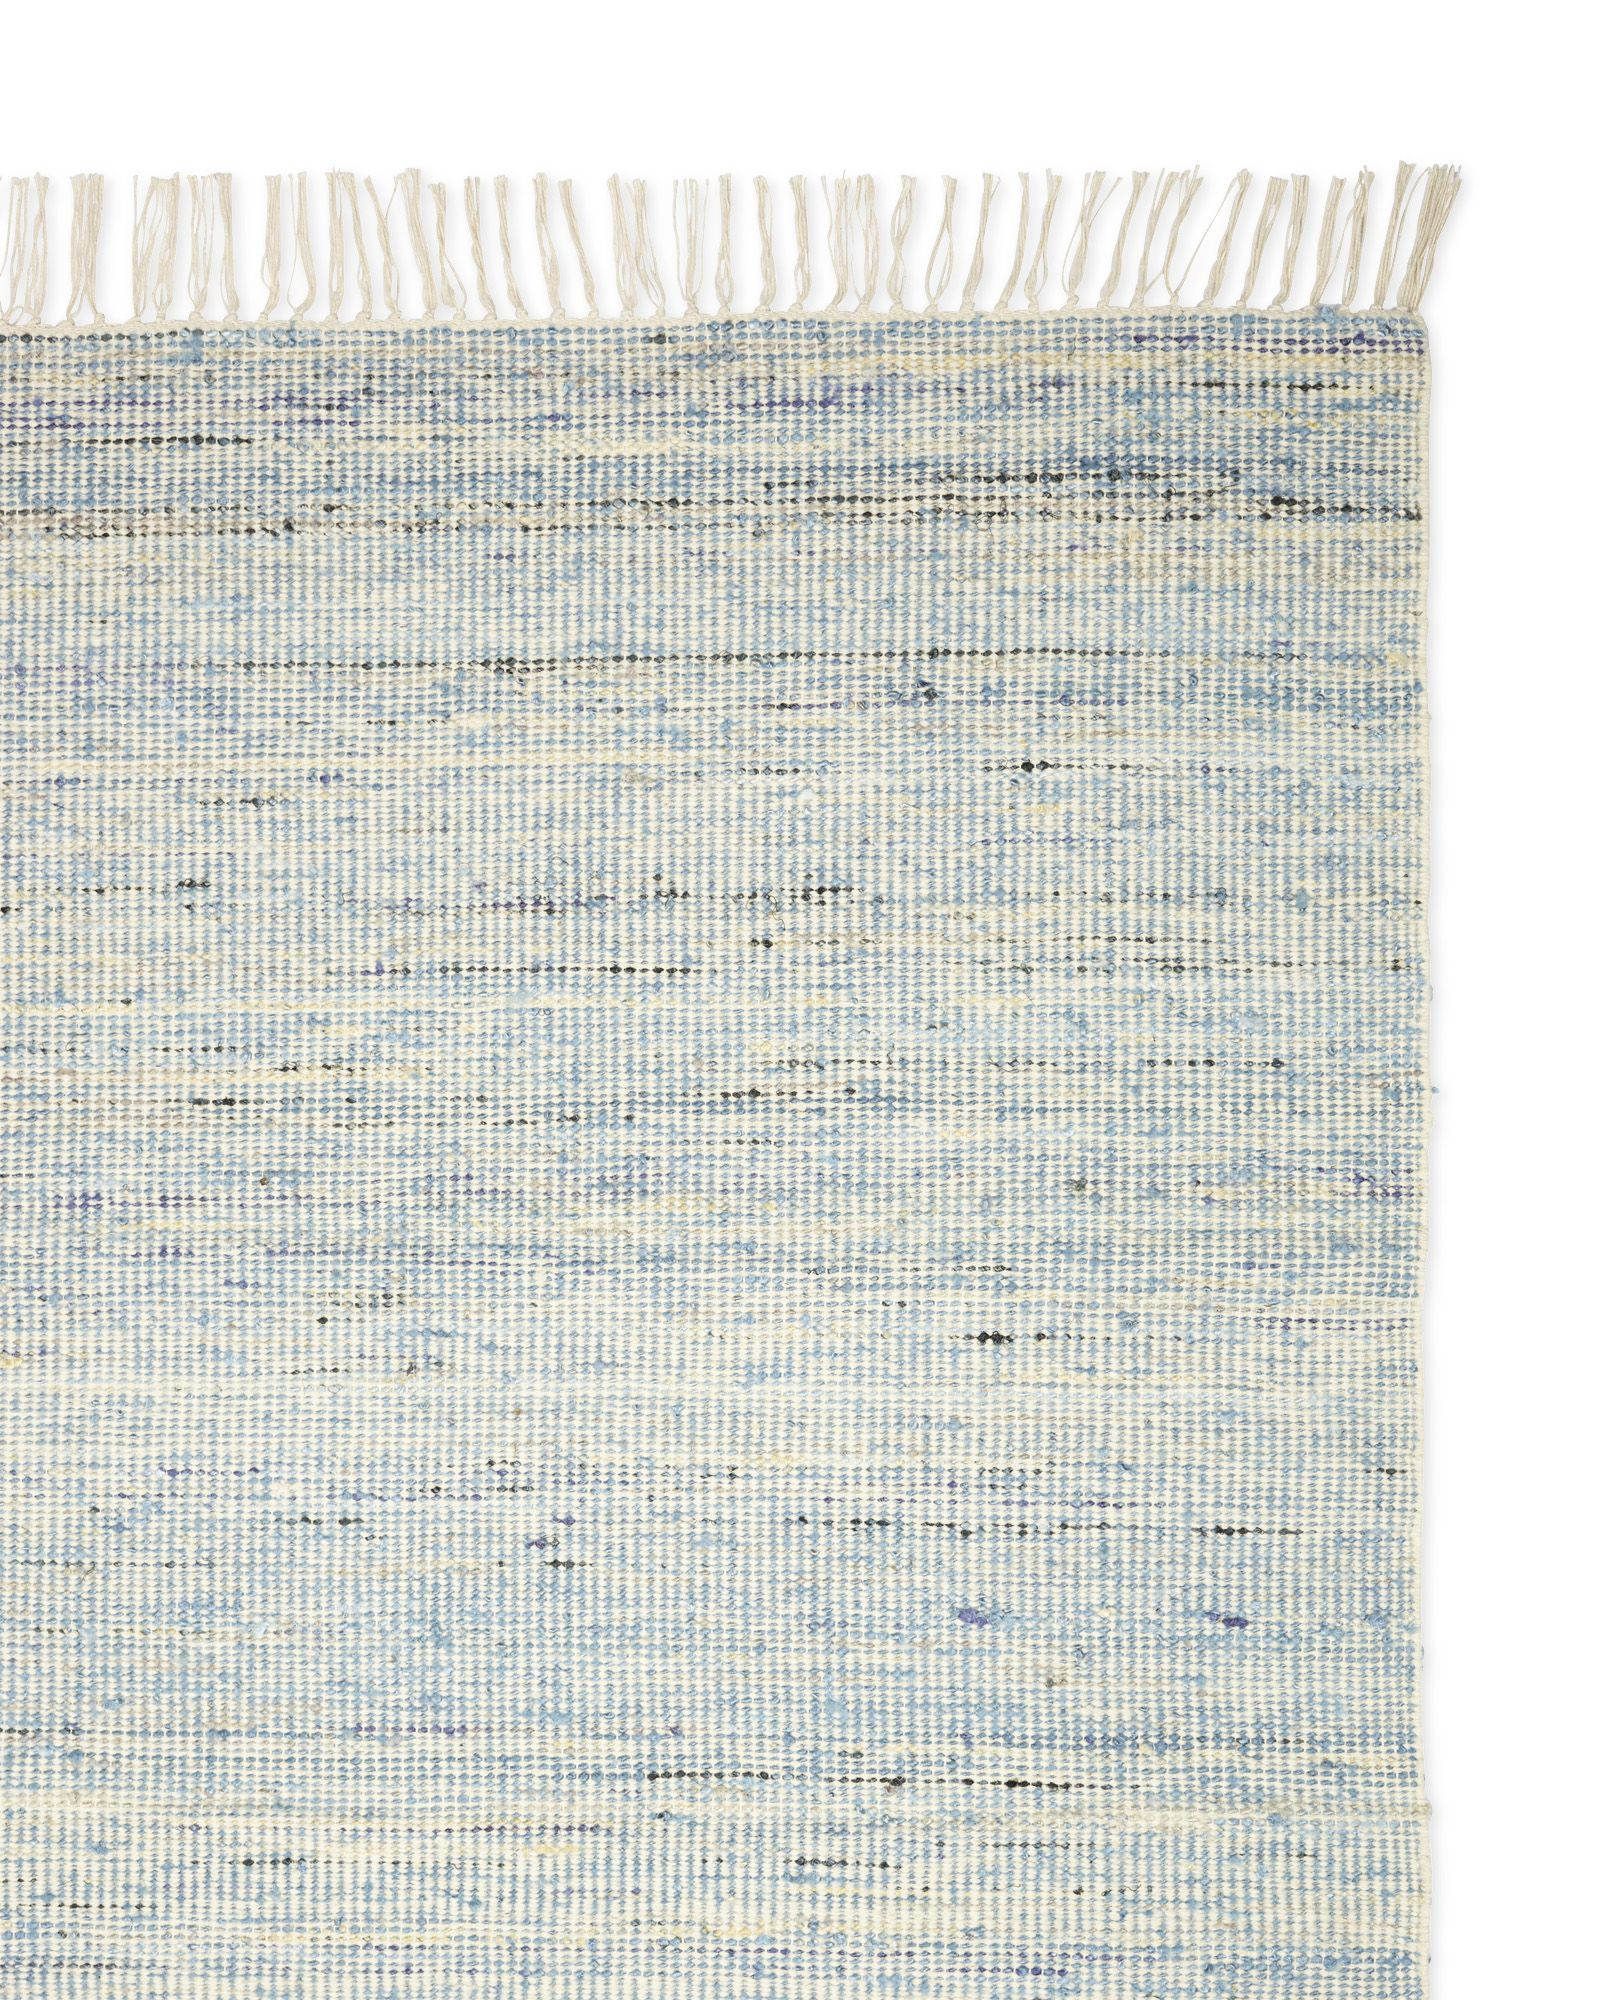 A genuine one-of-a-kind rug, thanks to an ingenious mix of repurposed saris and plush wool, combined into yarns and woven by hand. We're smitten by the nuances in color and pattern – always interesting, but never too much.